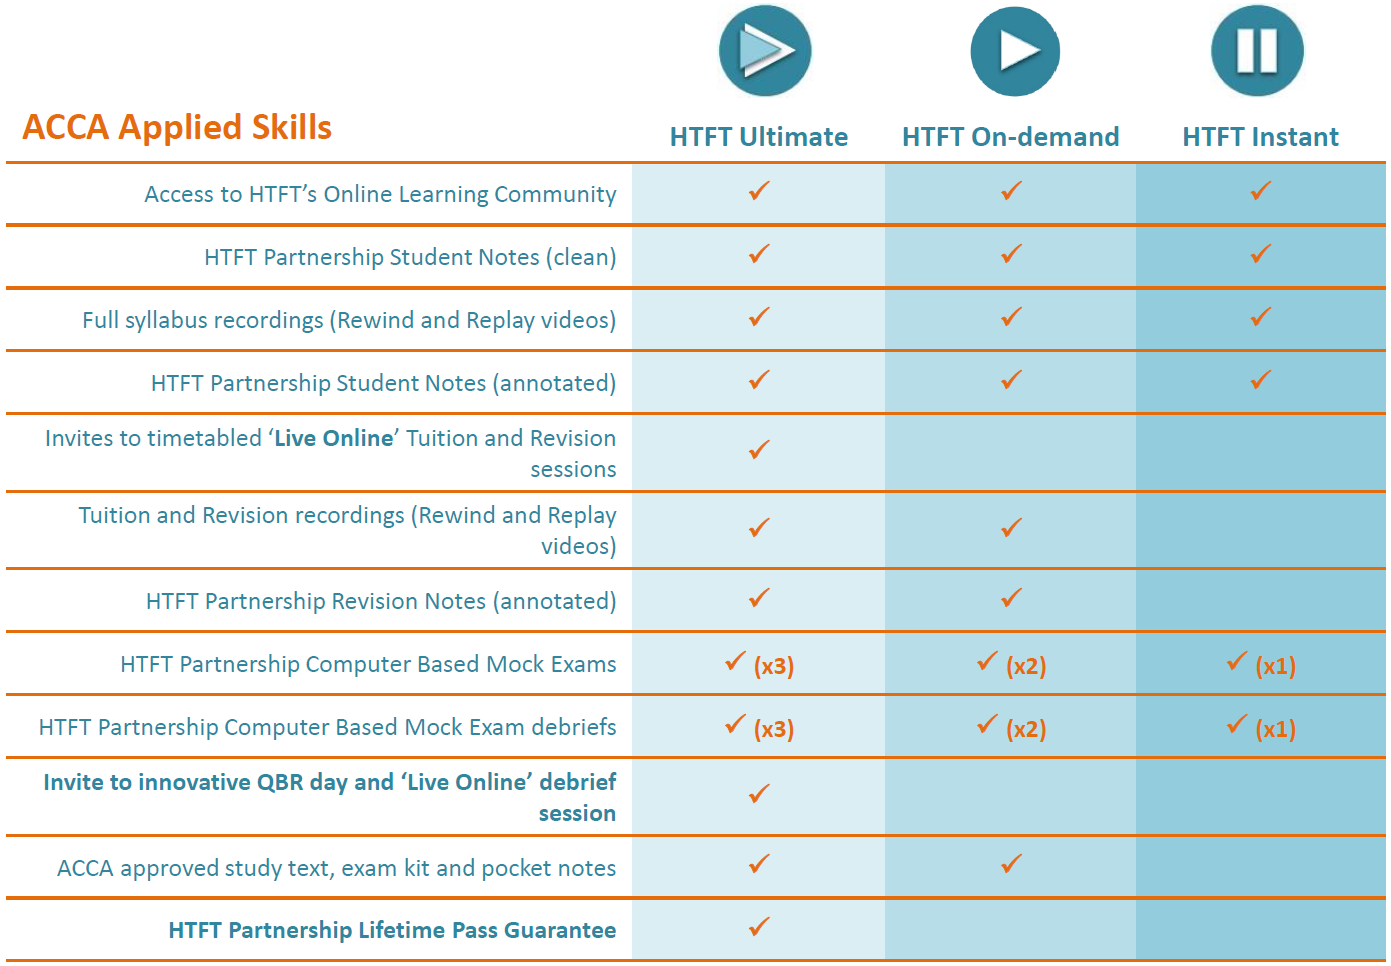 ACCA Applied Skills Table.png